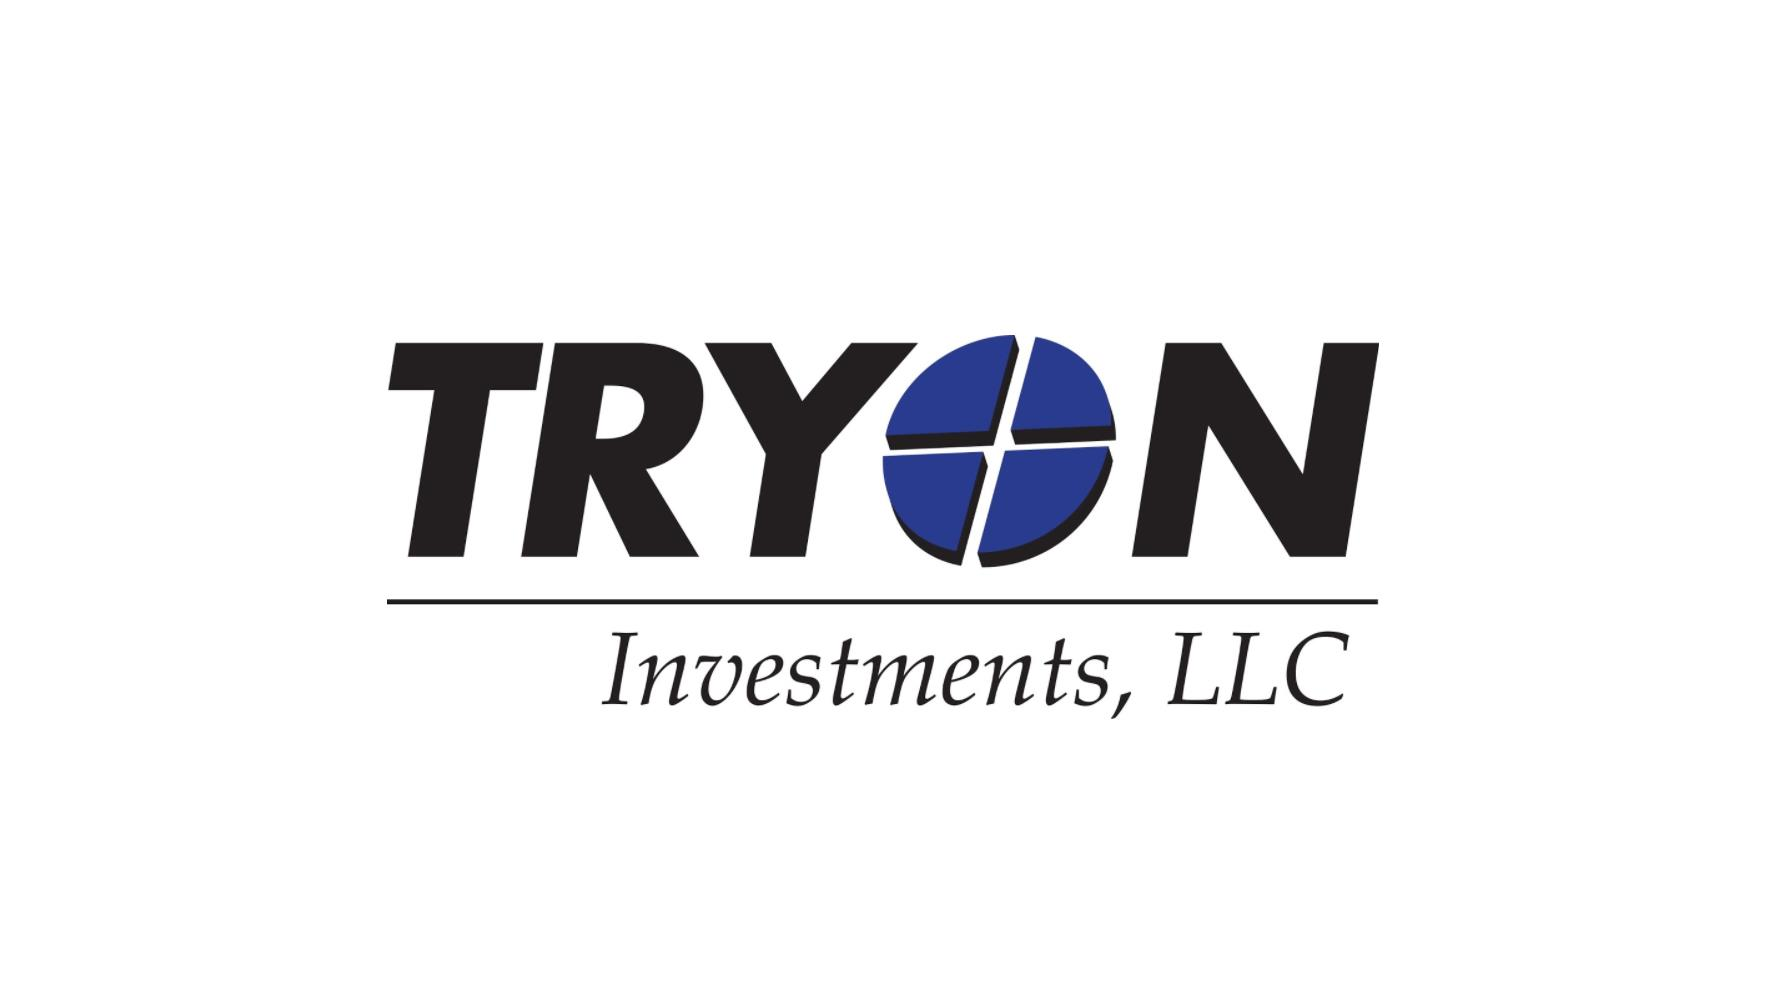 Tryon Investments, LLC Explains Why Investors Should Consider Private Placement Investments